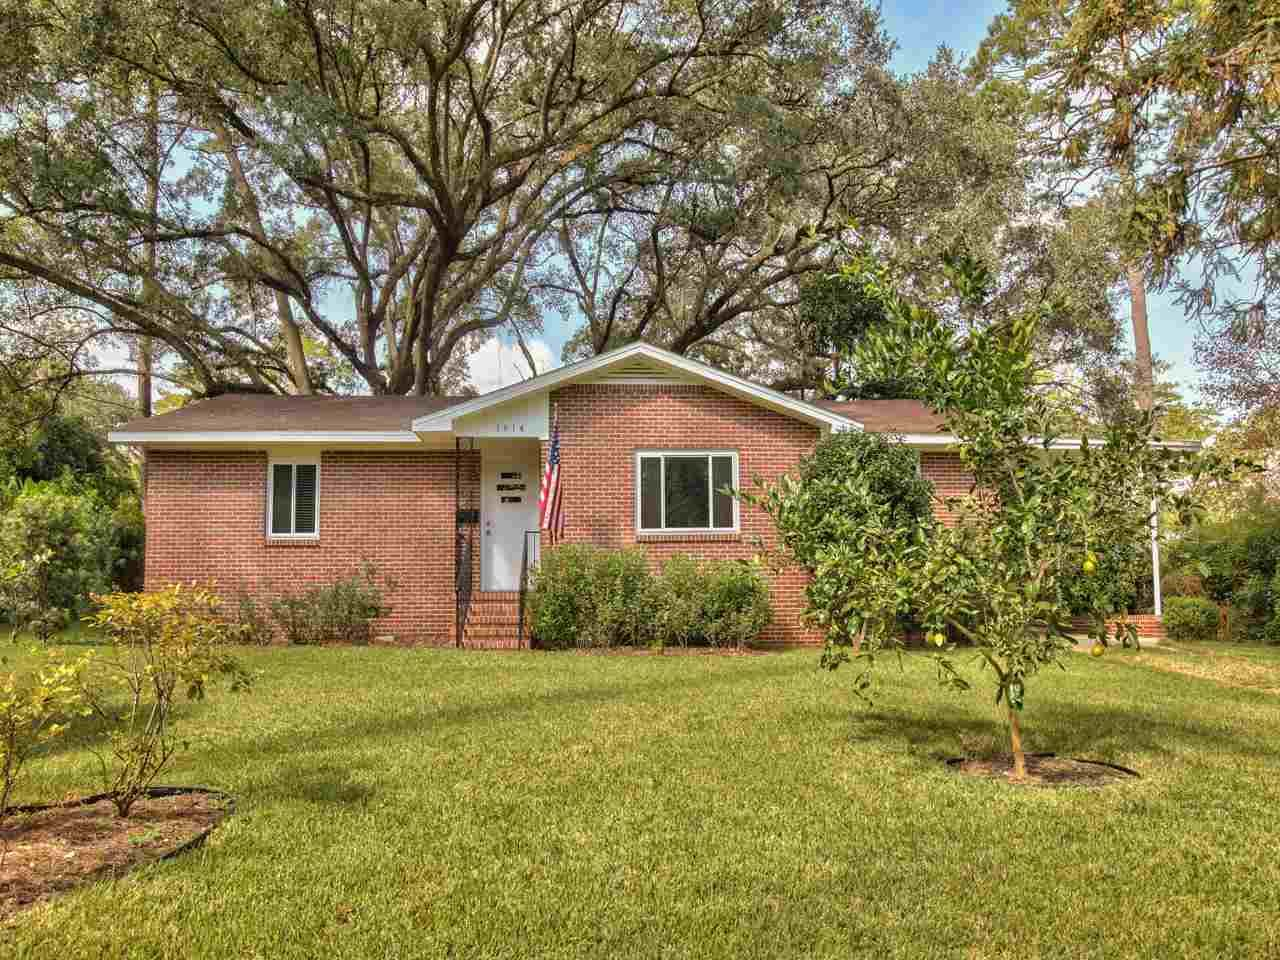 1614 Kuhlacre Drive, Tallahassee, FL 32308 - MLS#: 324580